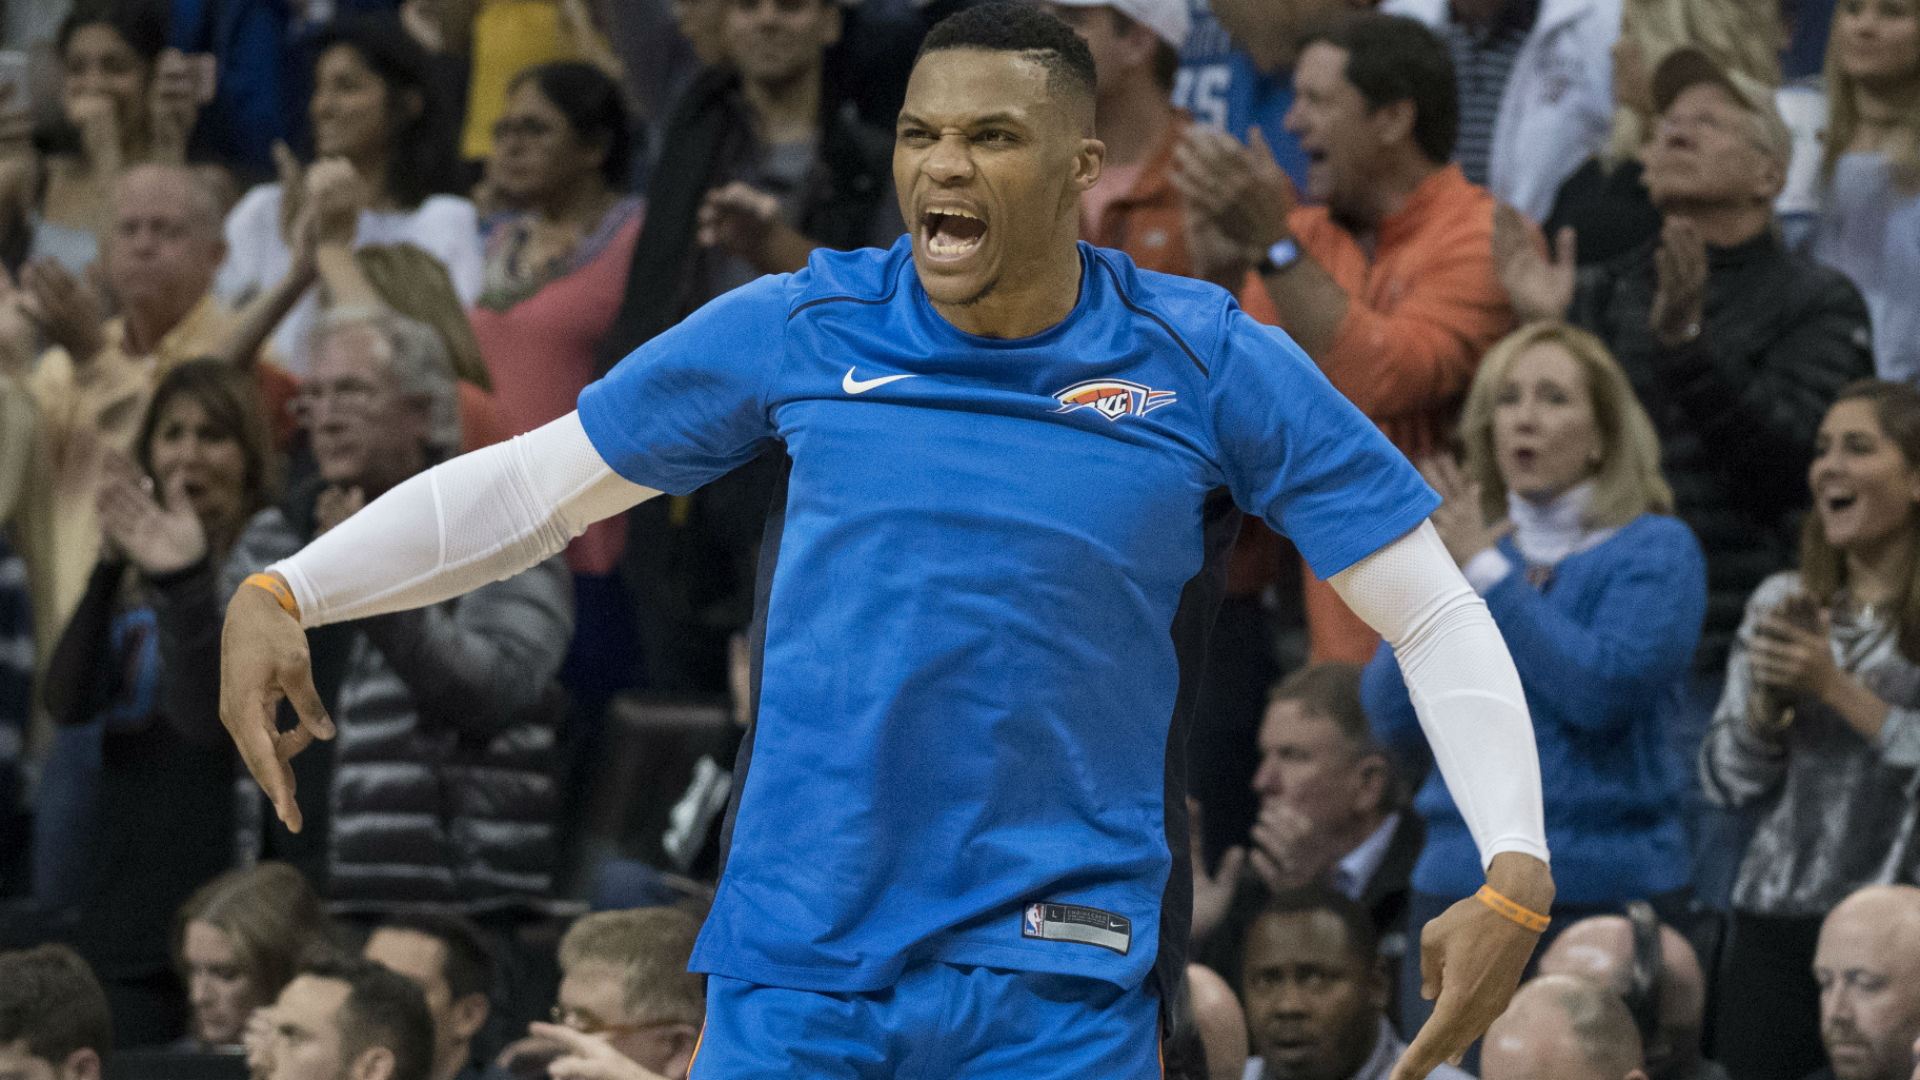 Russell-westbrook-ftrjpg_17c45pq1nm5ed1gxd8lrxke02q